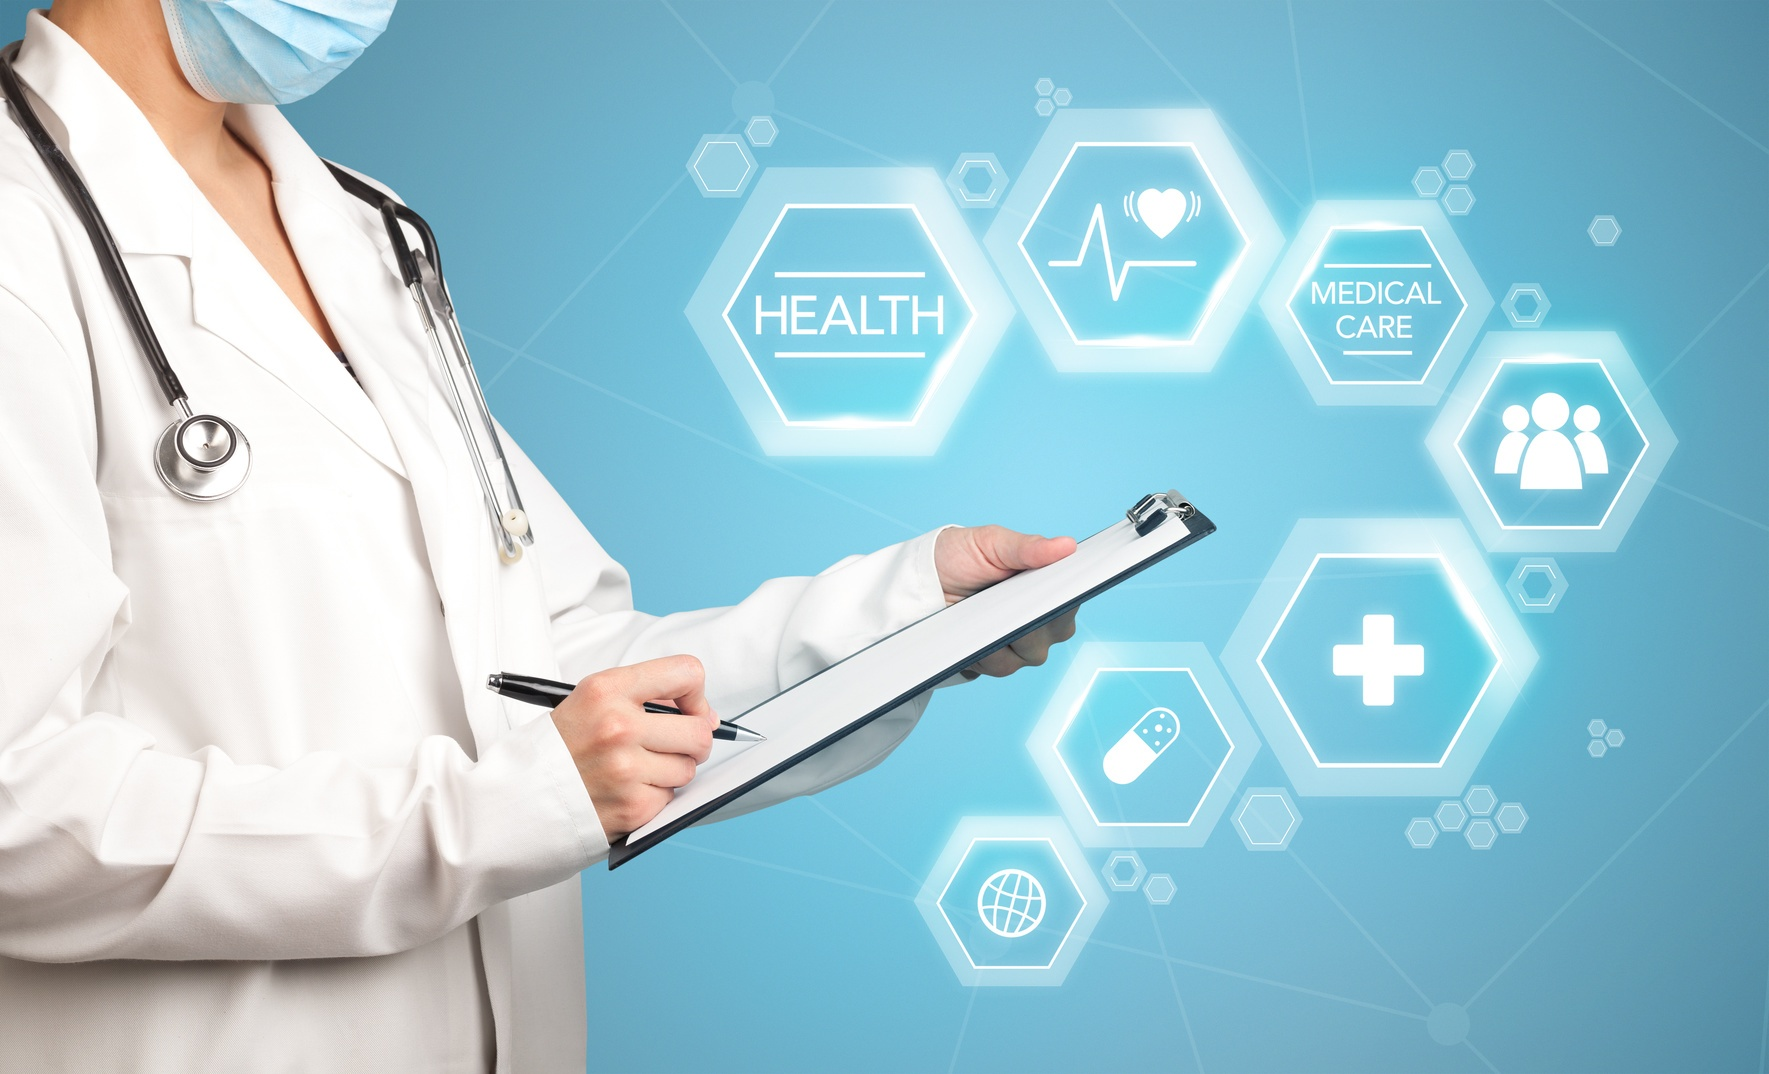 How Hospitals Can Harness Data to Reduce Hospital Readmissions